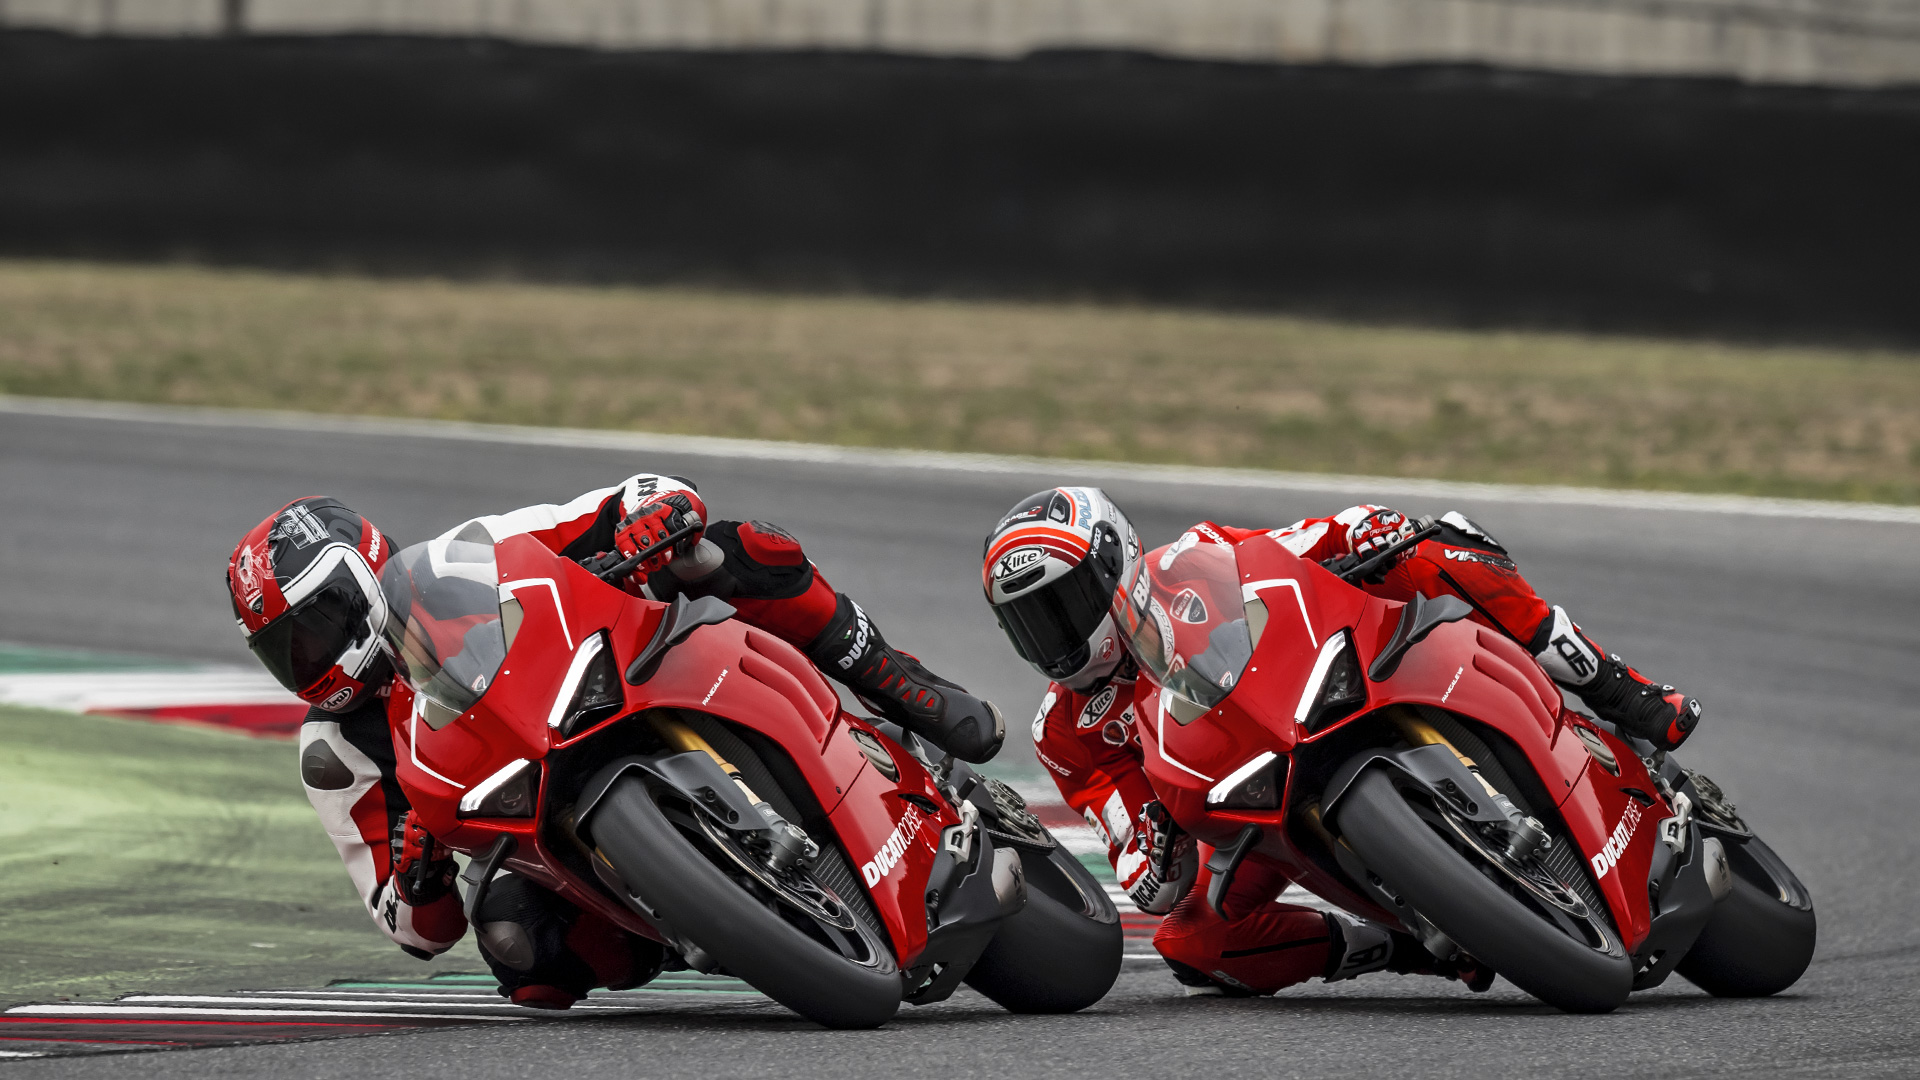 Panigale-V4R-Red-MY19-Ambience-05-Galler